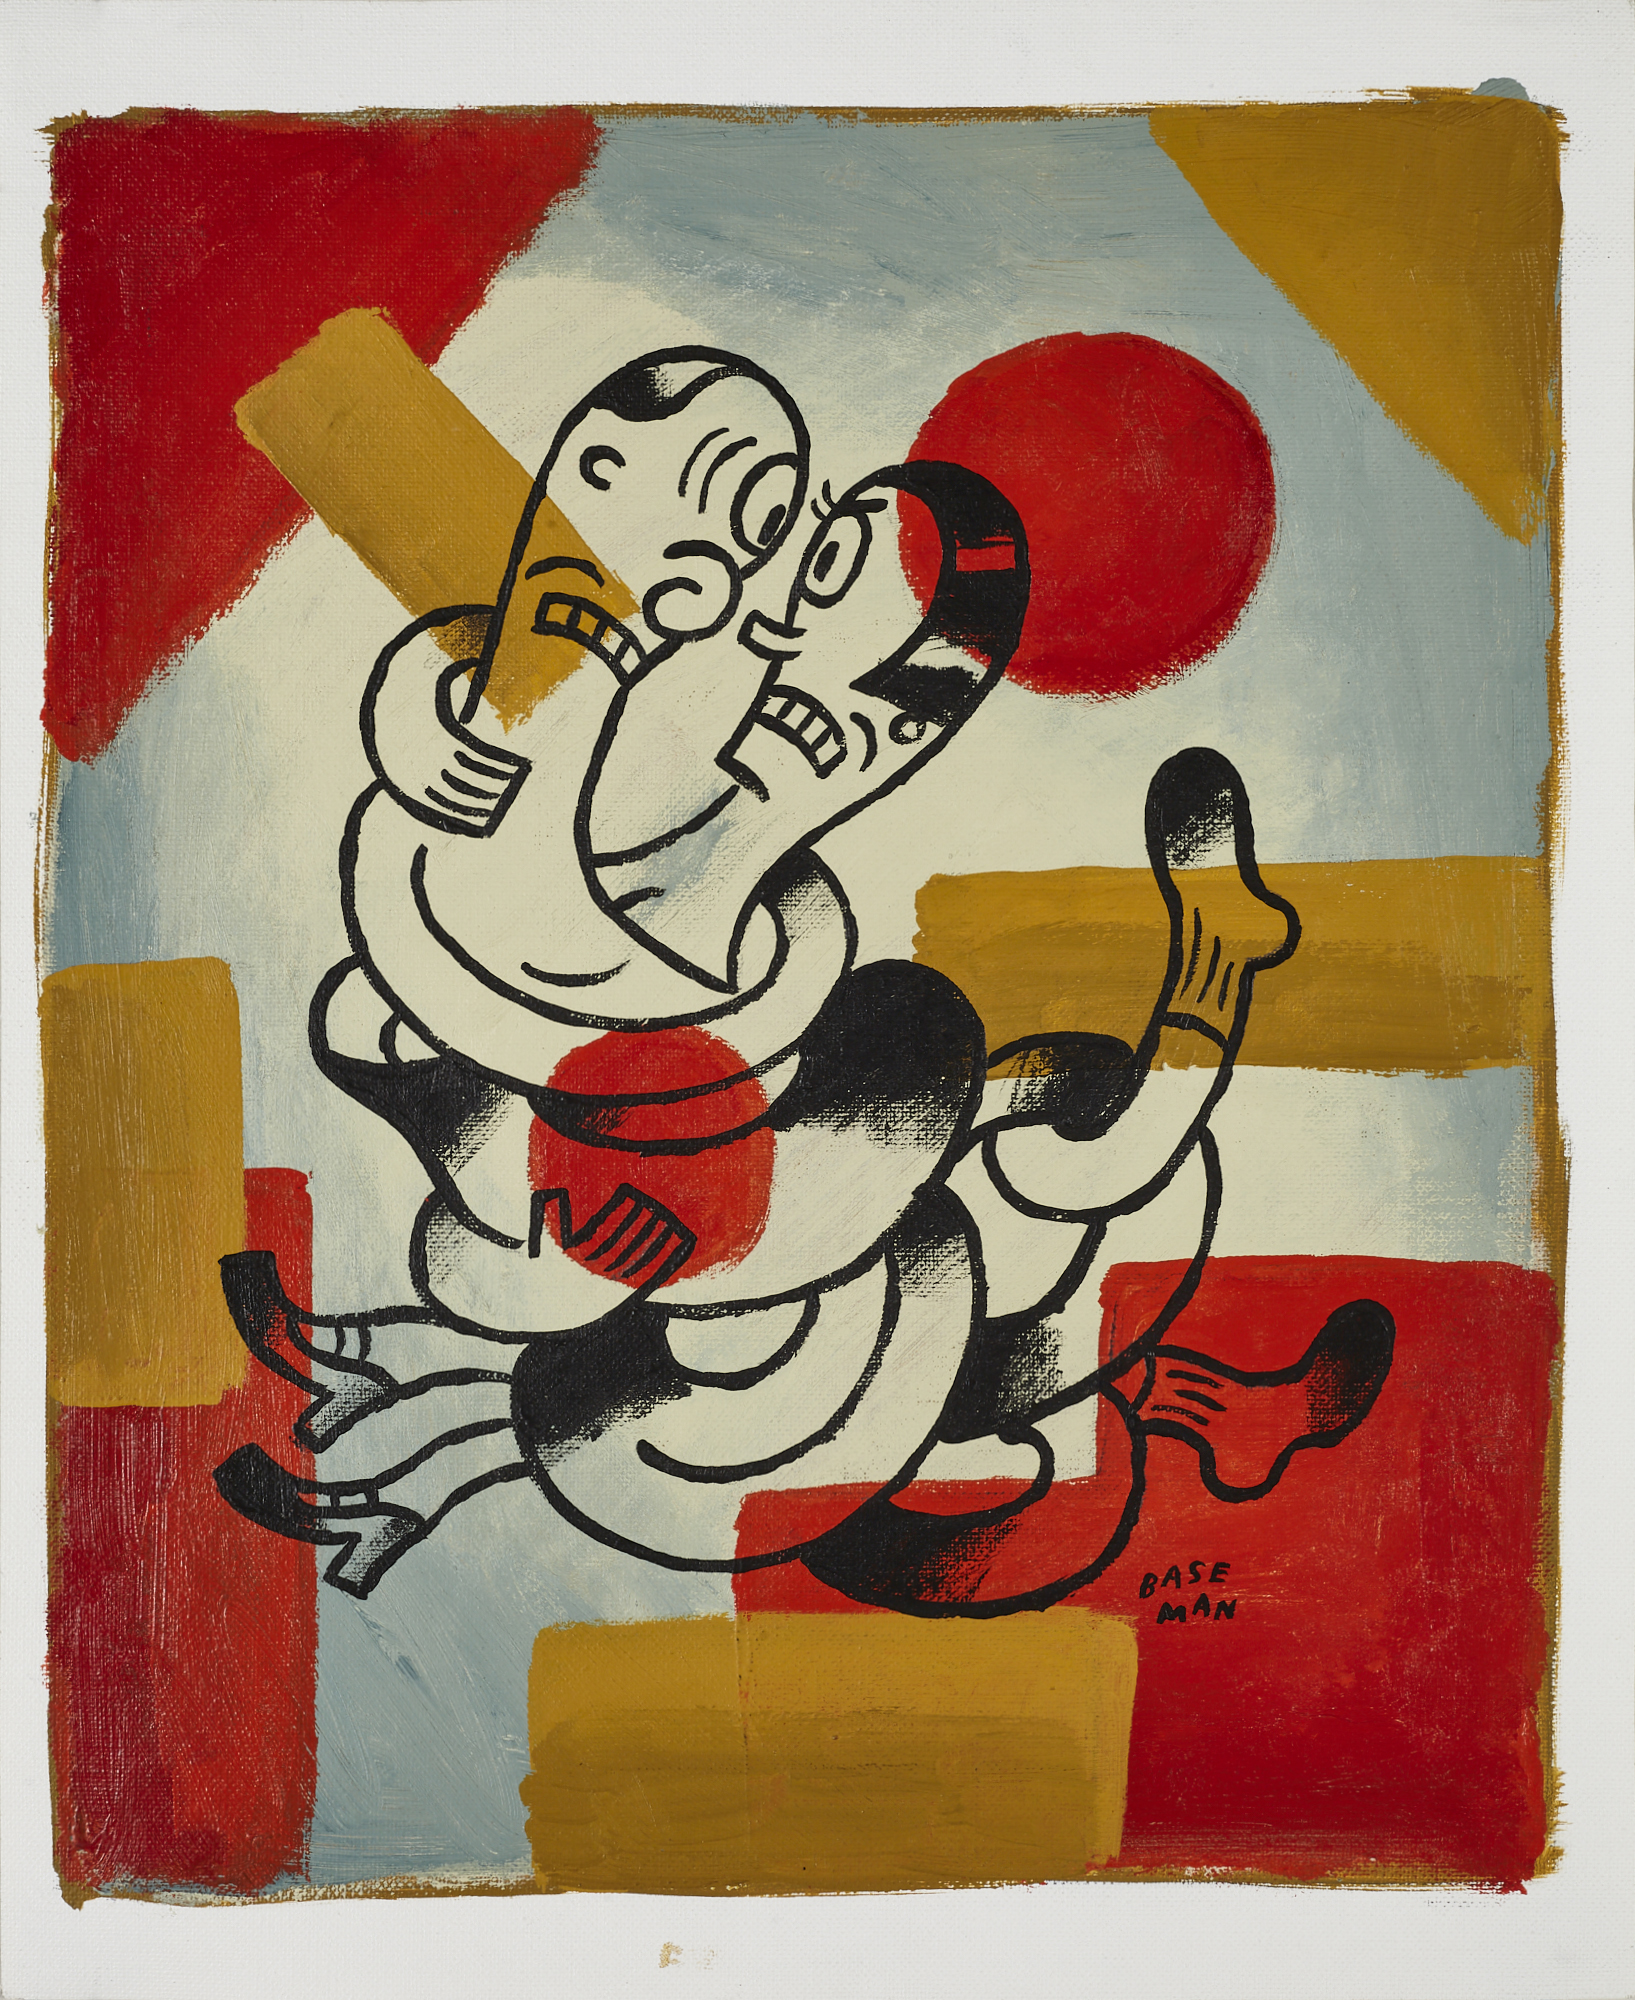 Man and Woman in A Tangle